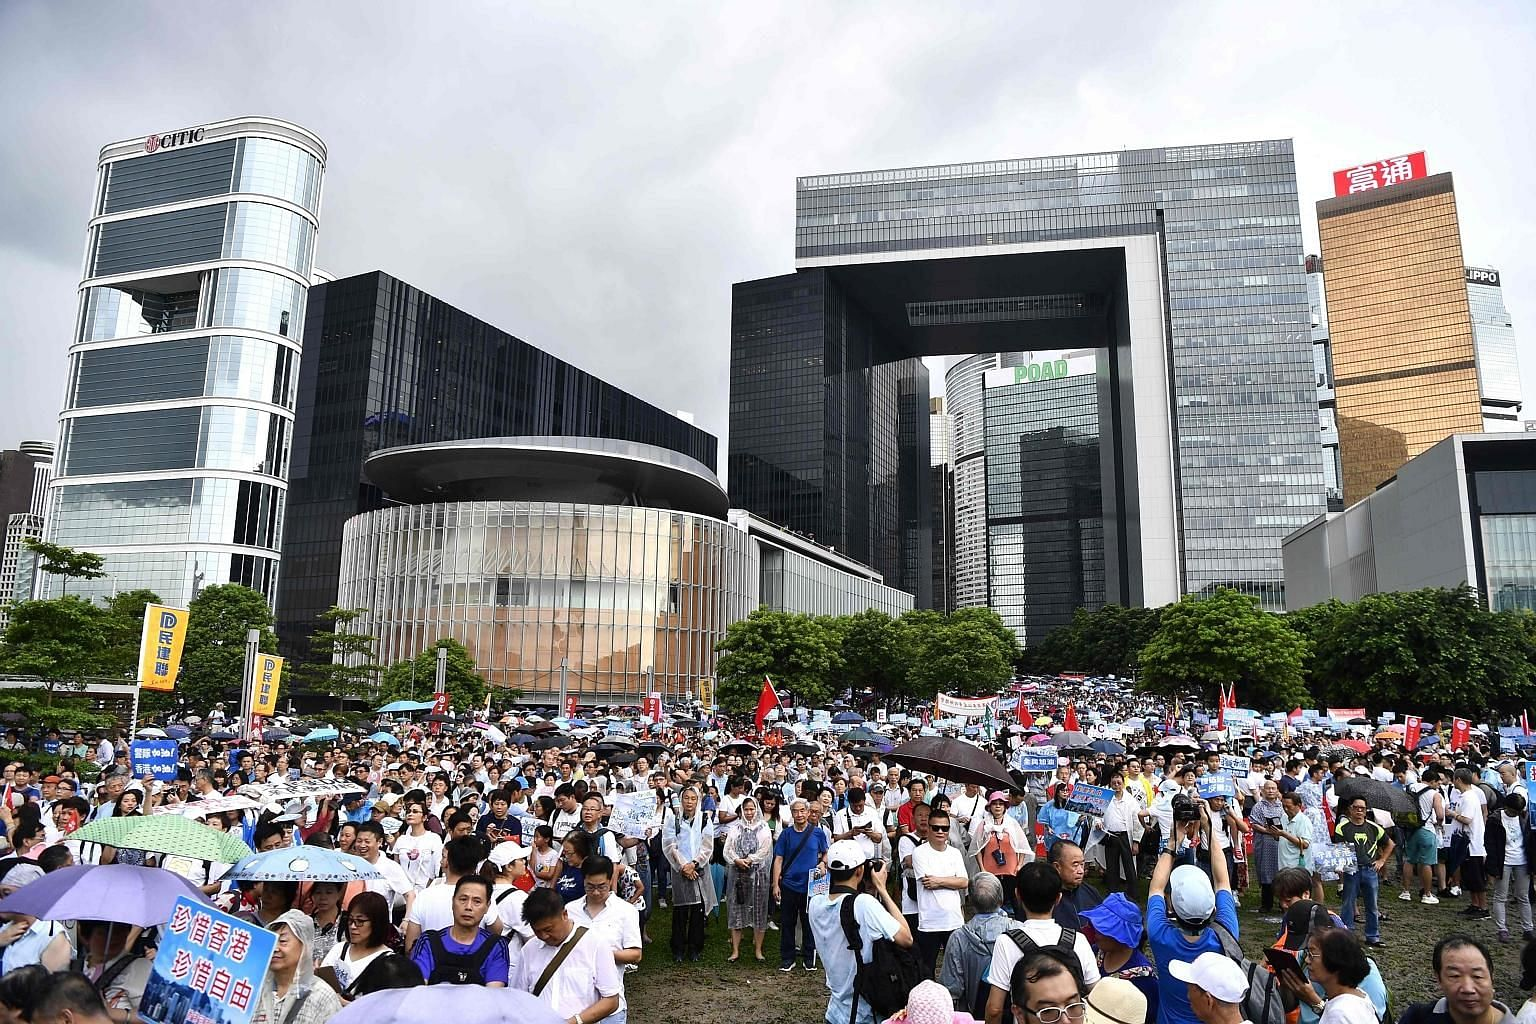 Demonstrators attending a pro-government rally outside the Hong Kong government headquarters yesterday to show support for the police and pro-Beijing leadership. In an address to be delivered in October, Chief Executive Carrie Lam plans to emphasise